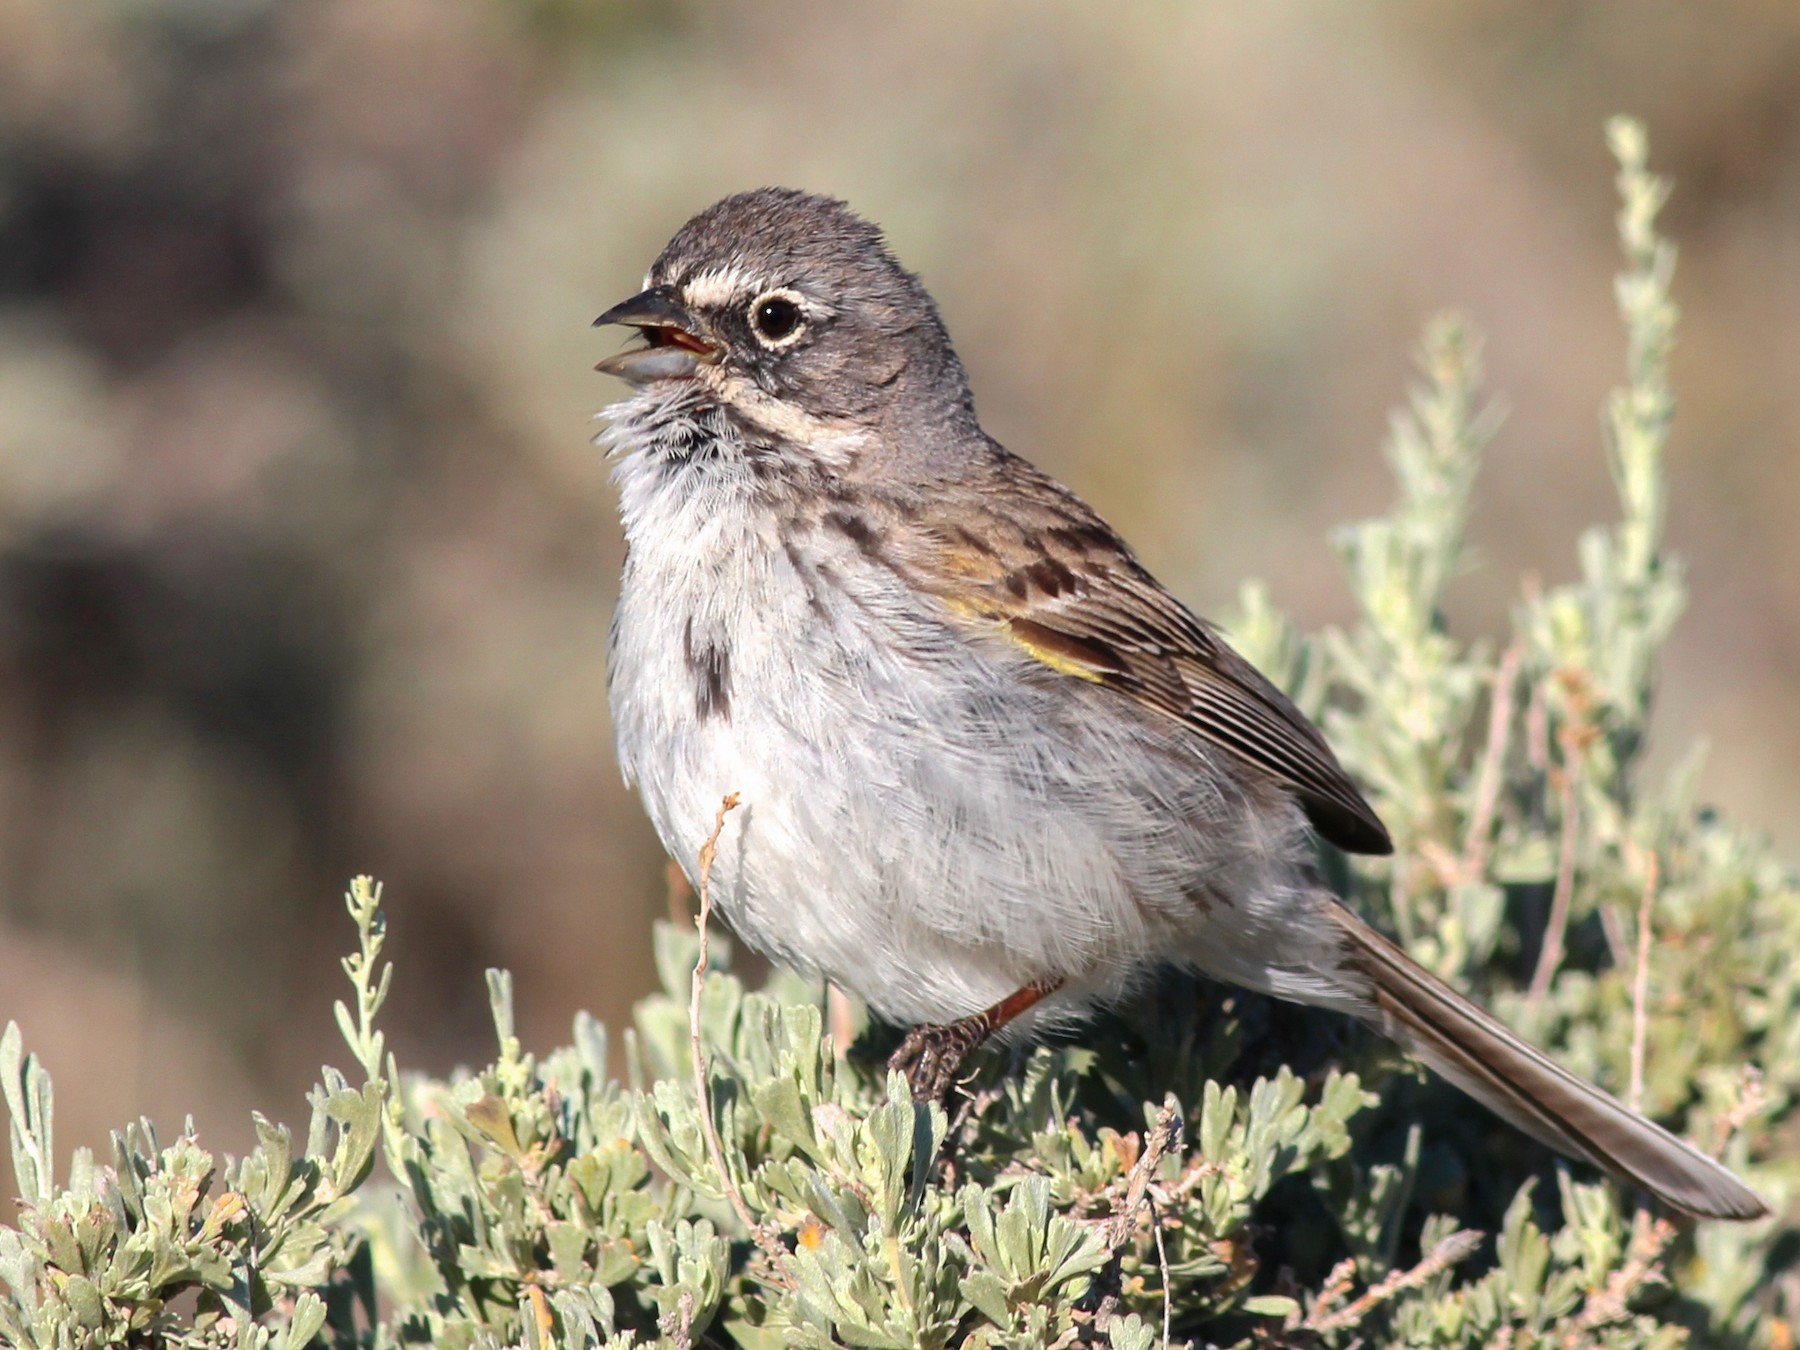 Sagebrush Sparrow - Shawn Billerman